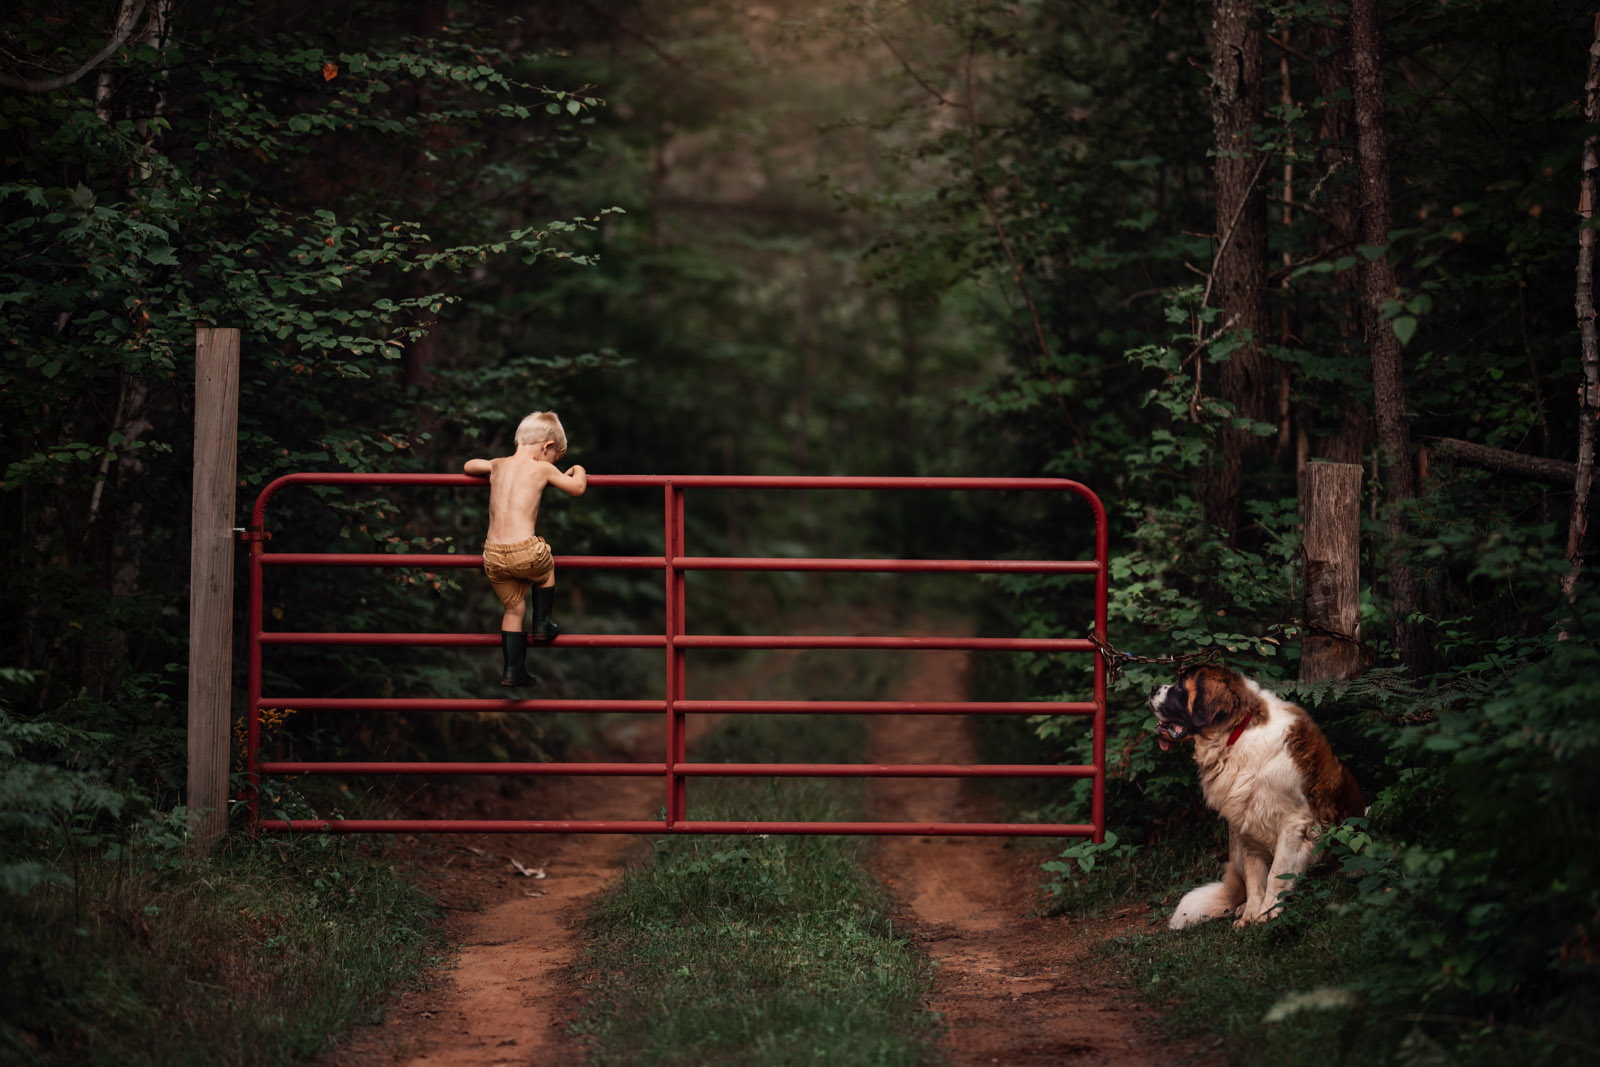 photographing pets small boy climbing fence with large dog st bernard by meg loeks